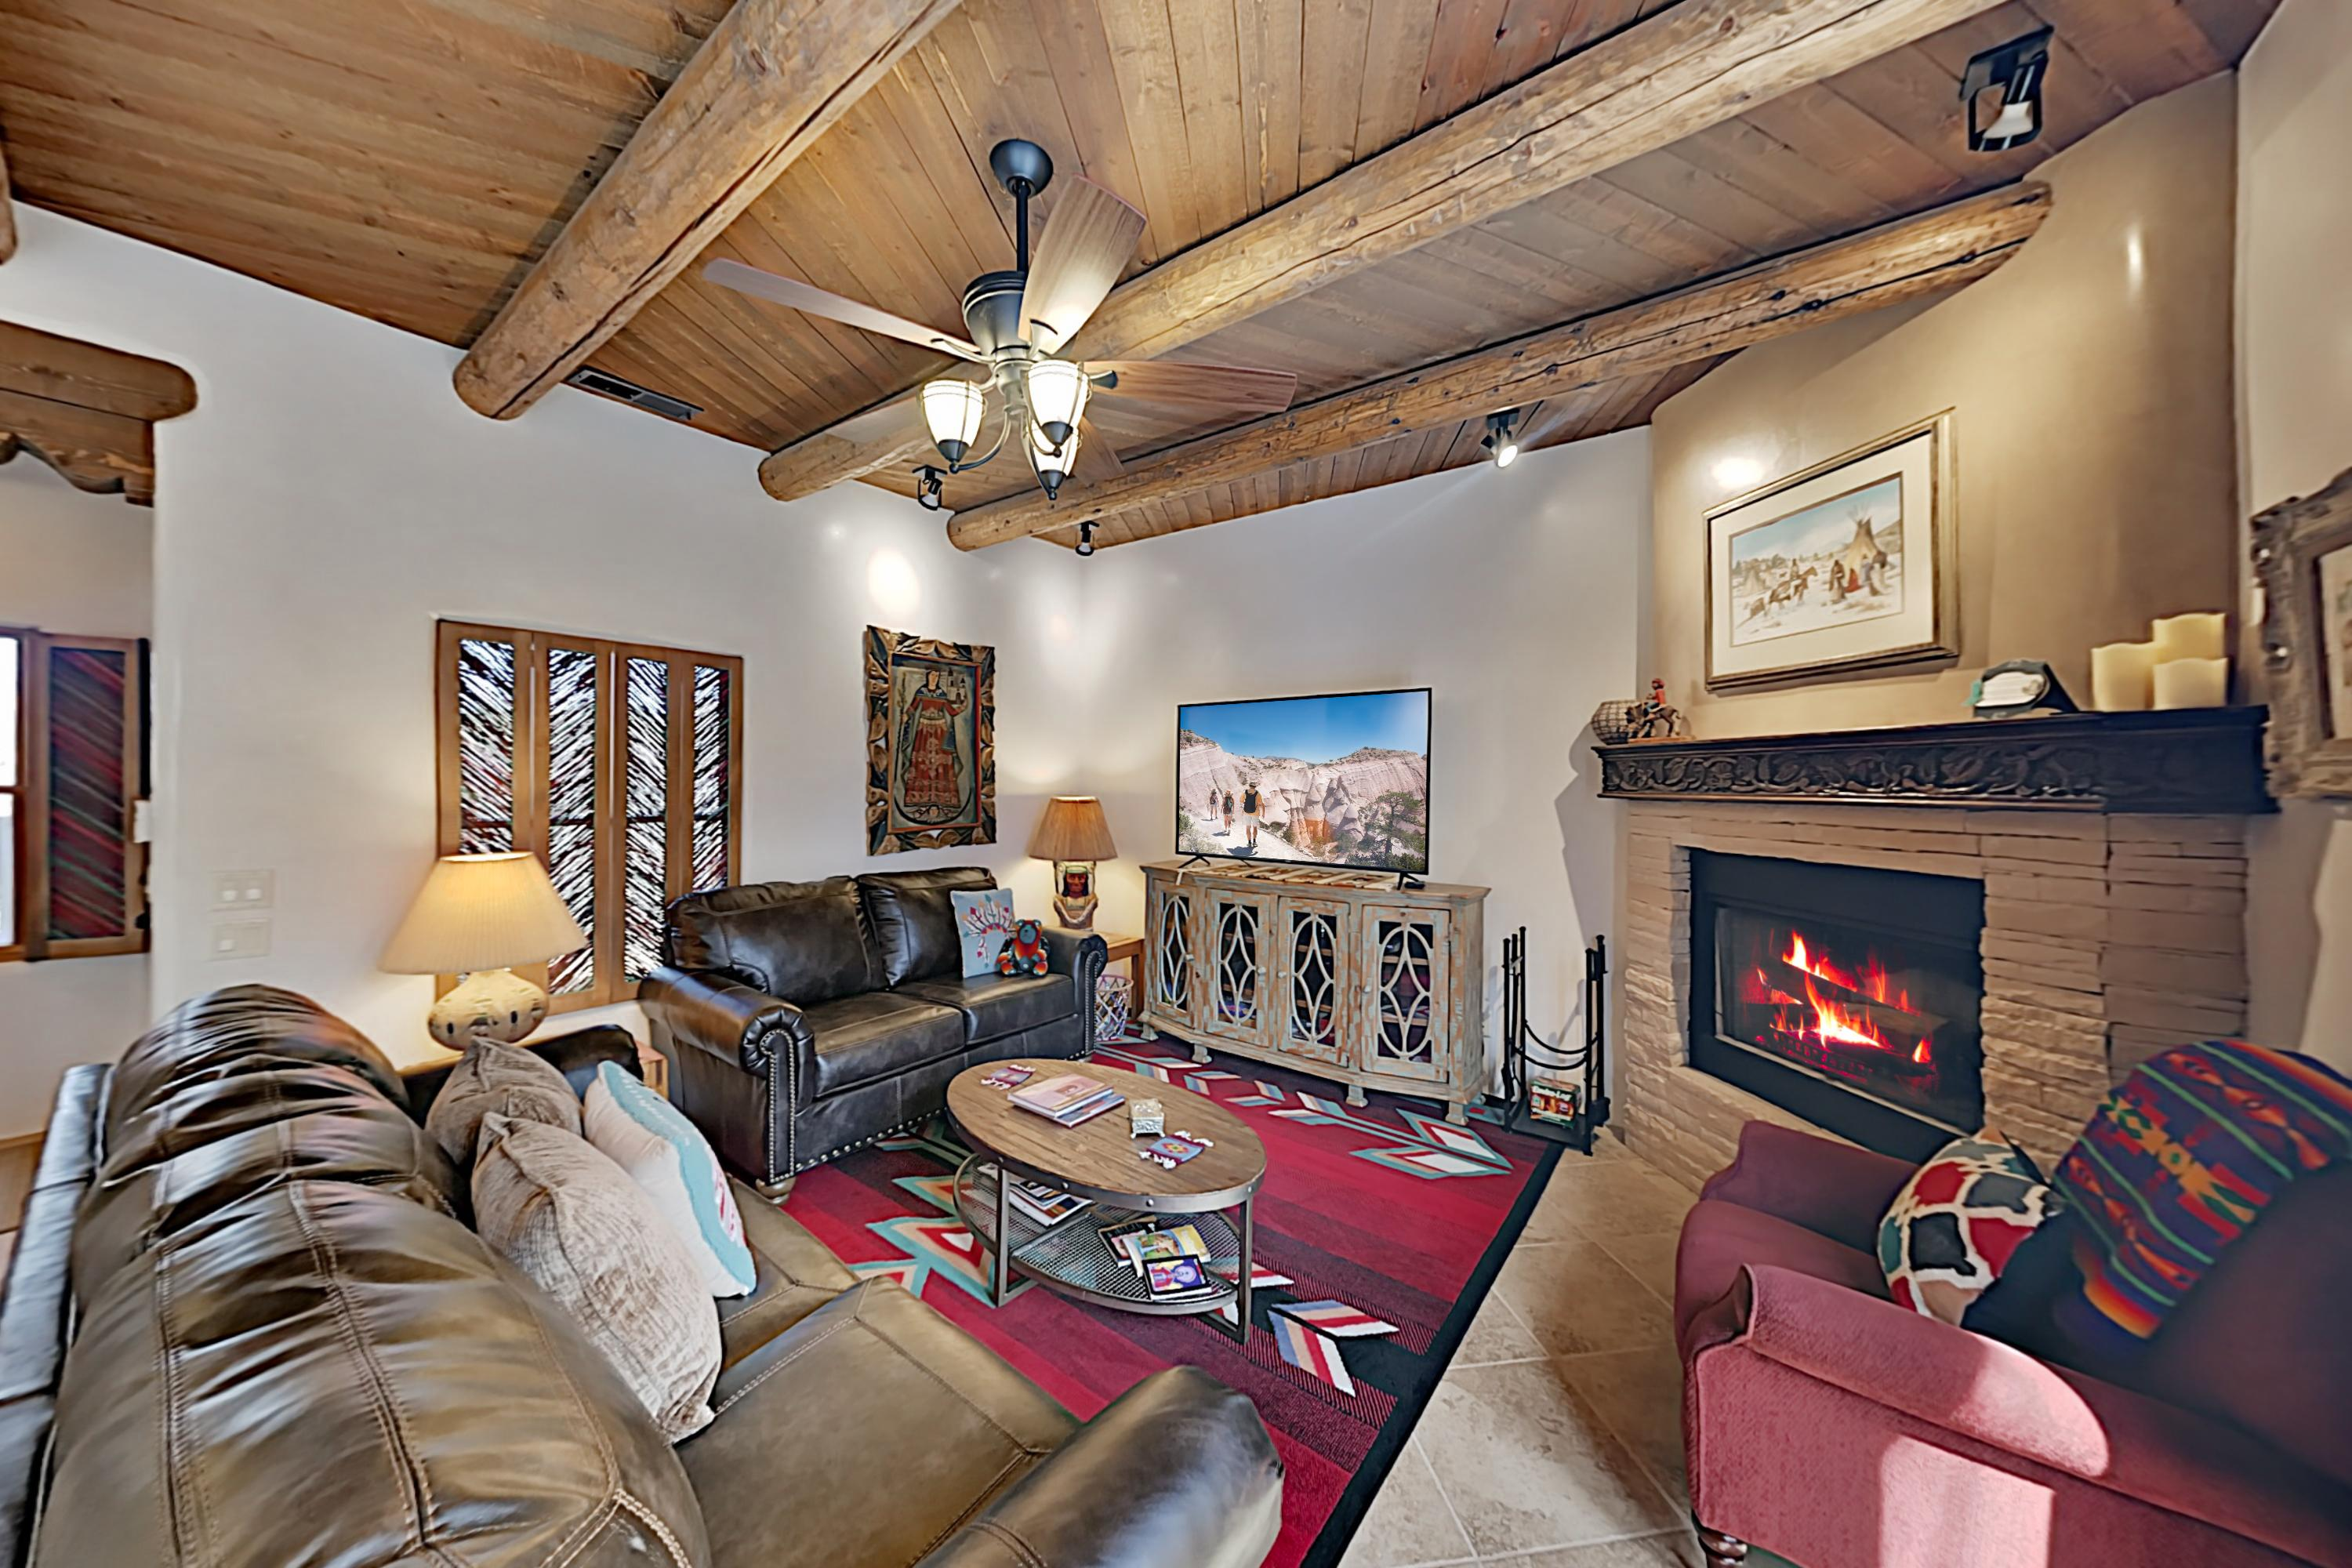 Welcome to Santa Fe! Enjoy comfortable Santa Fe living in this 2-level 2BR/2.5BA townhome duplex with high-end finishes.